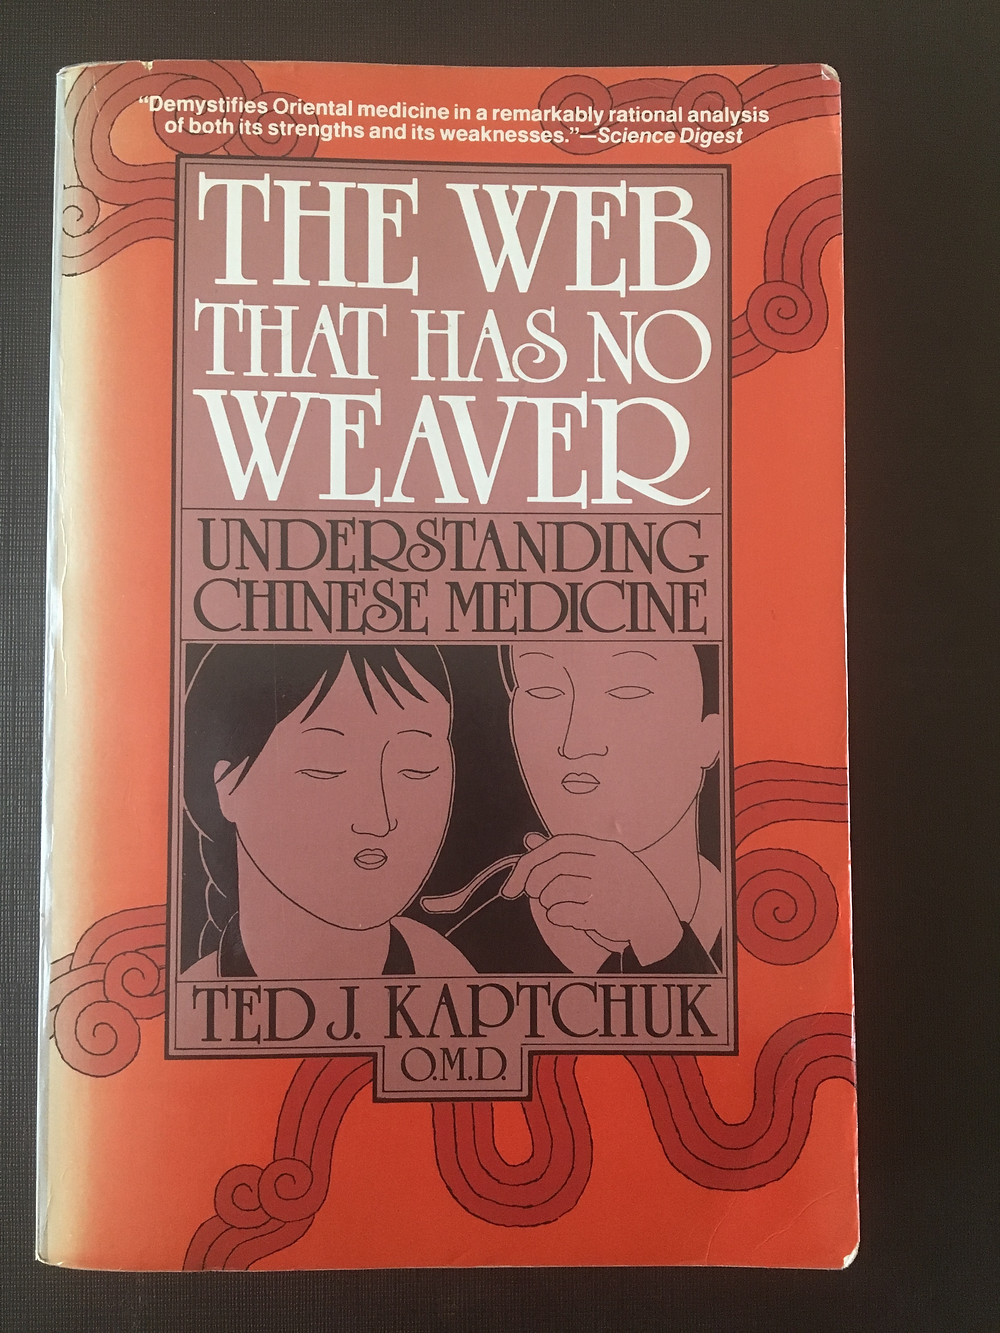 The Web That Has No Weaver book cover